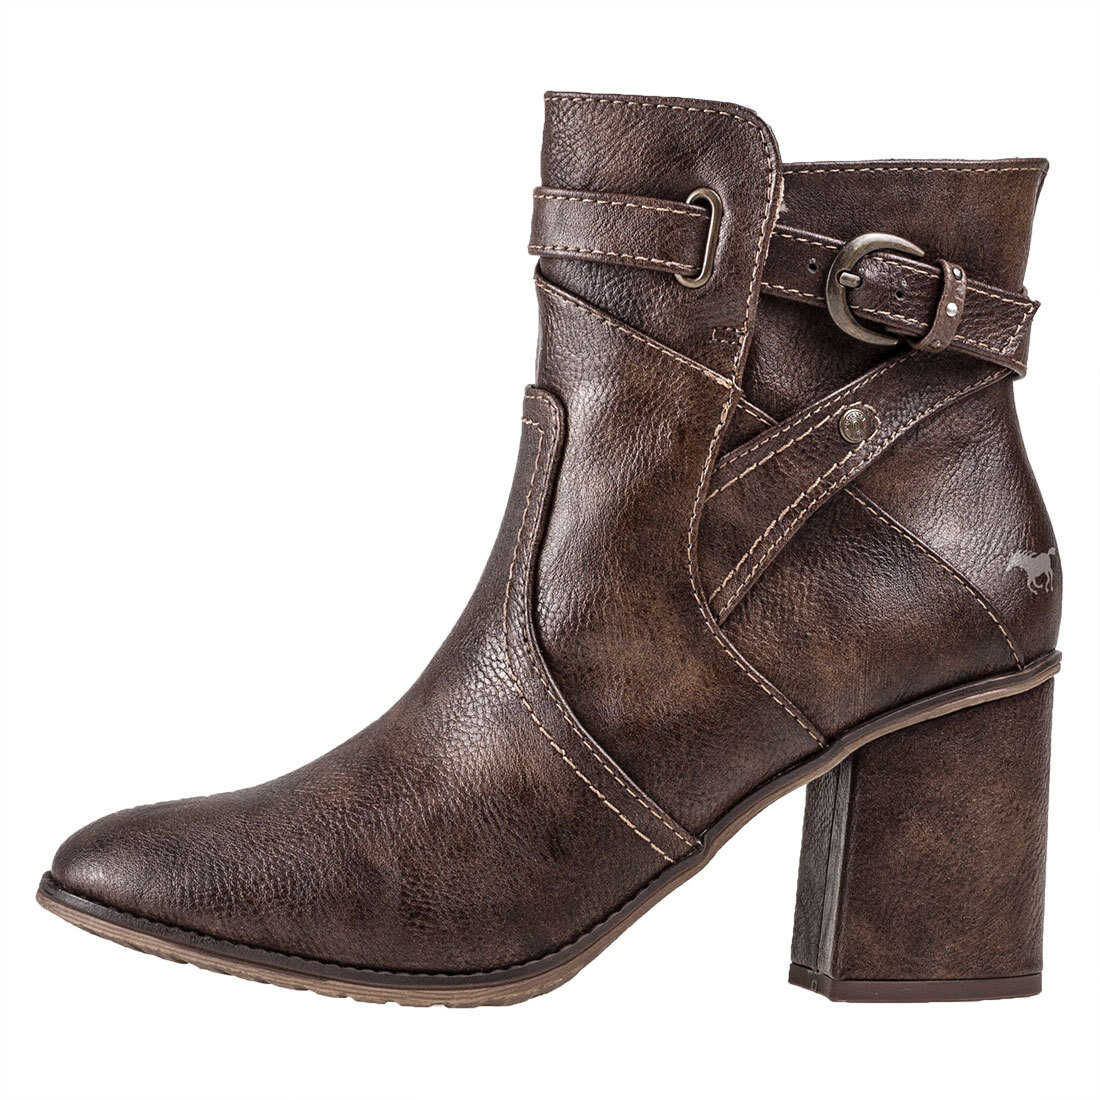 Mustang Heeled Ankle Boots In Brown Brown